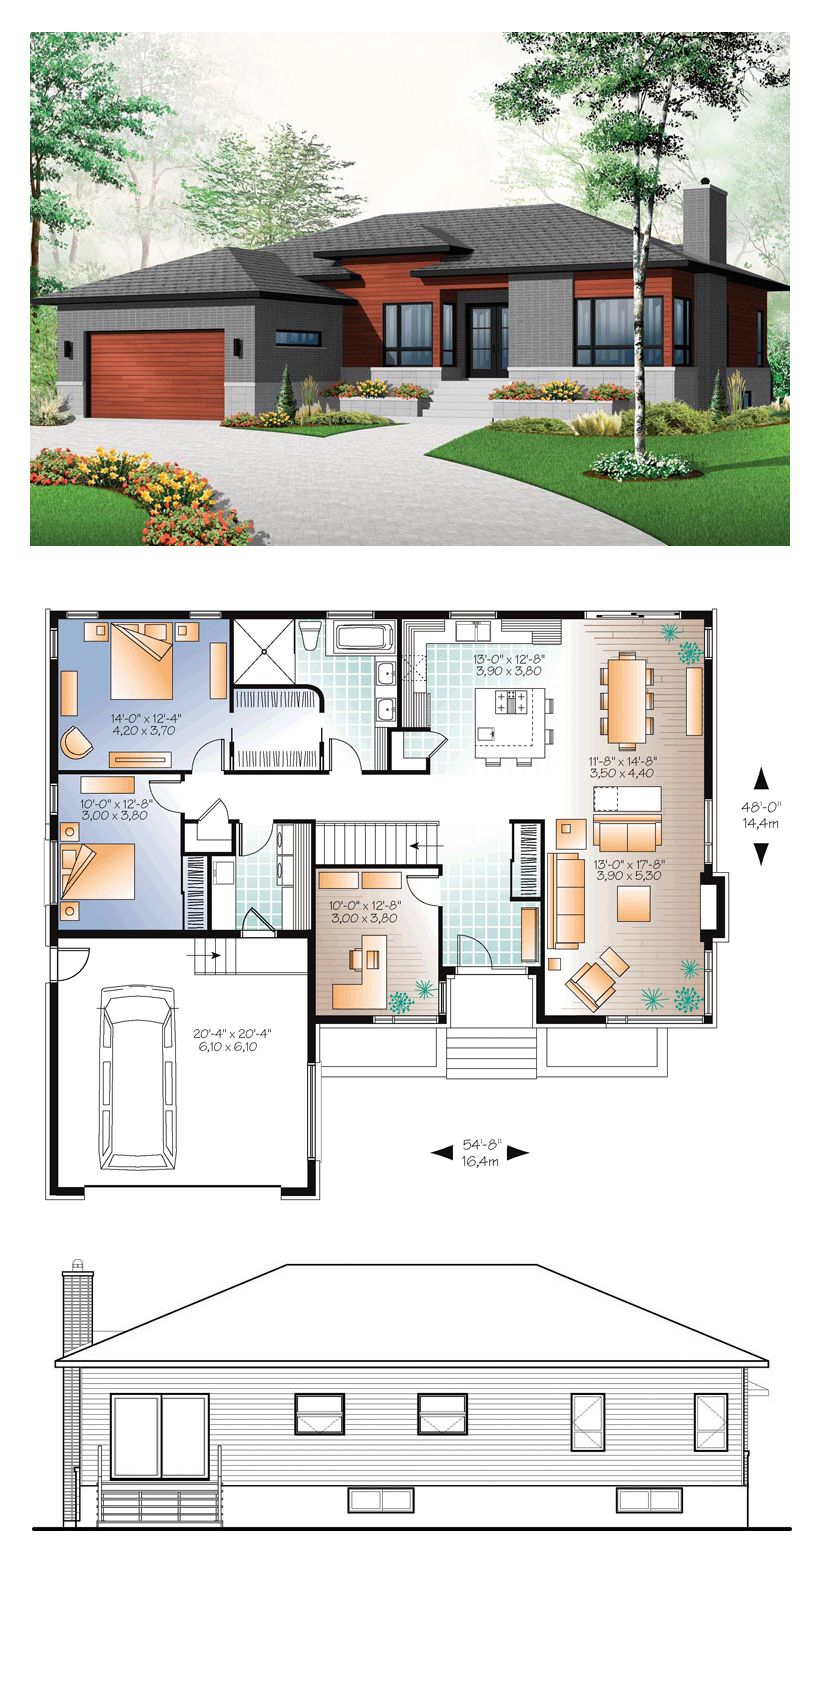 Modern Style House Plan 76355 With 3 Bed 1 Bath 2 Car intended for Modern 3 Bedroom House Plans